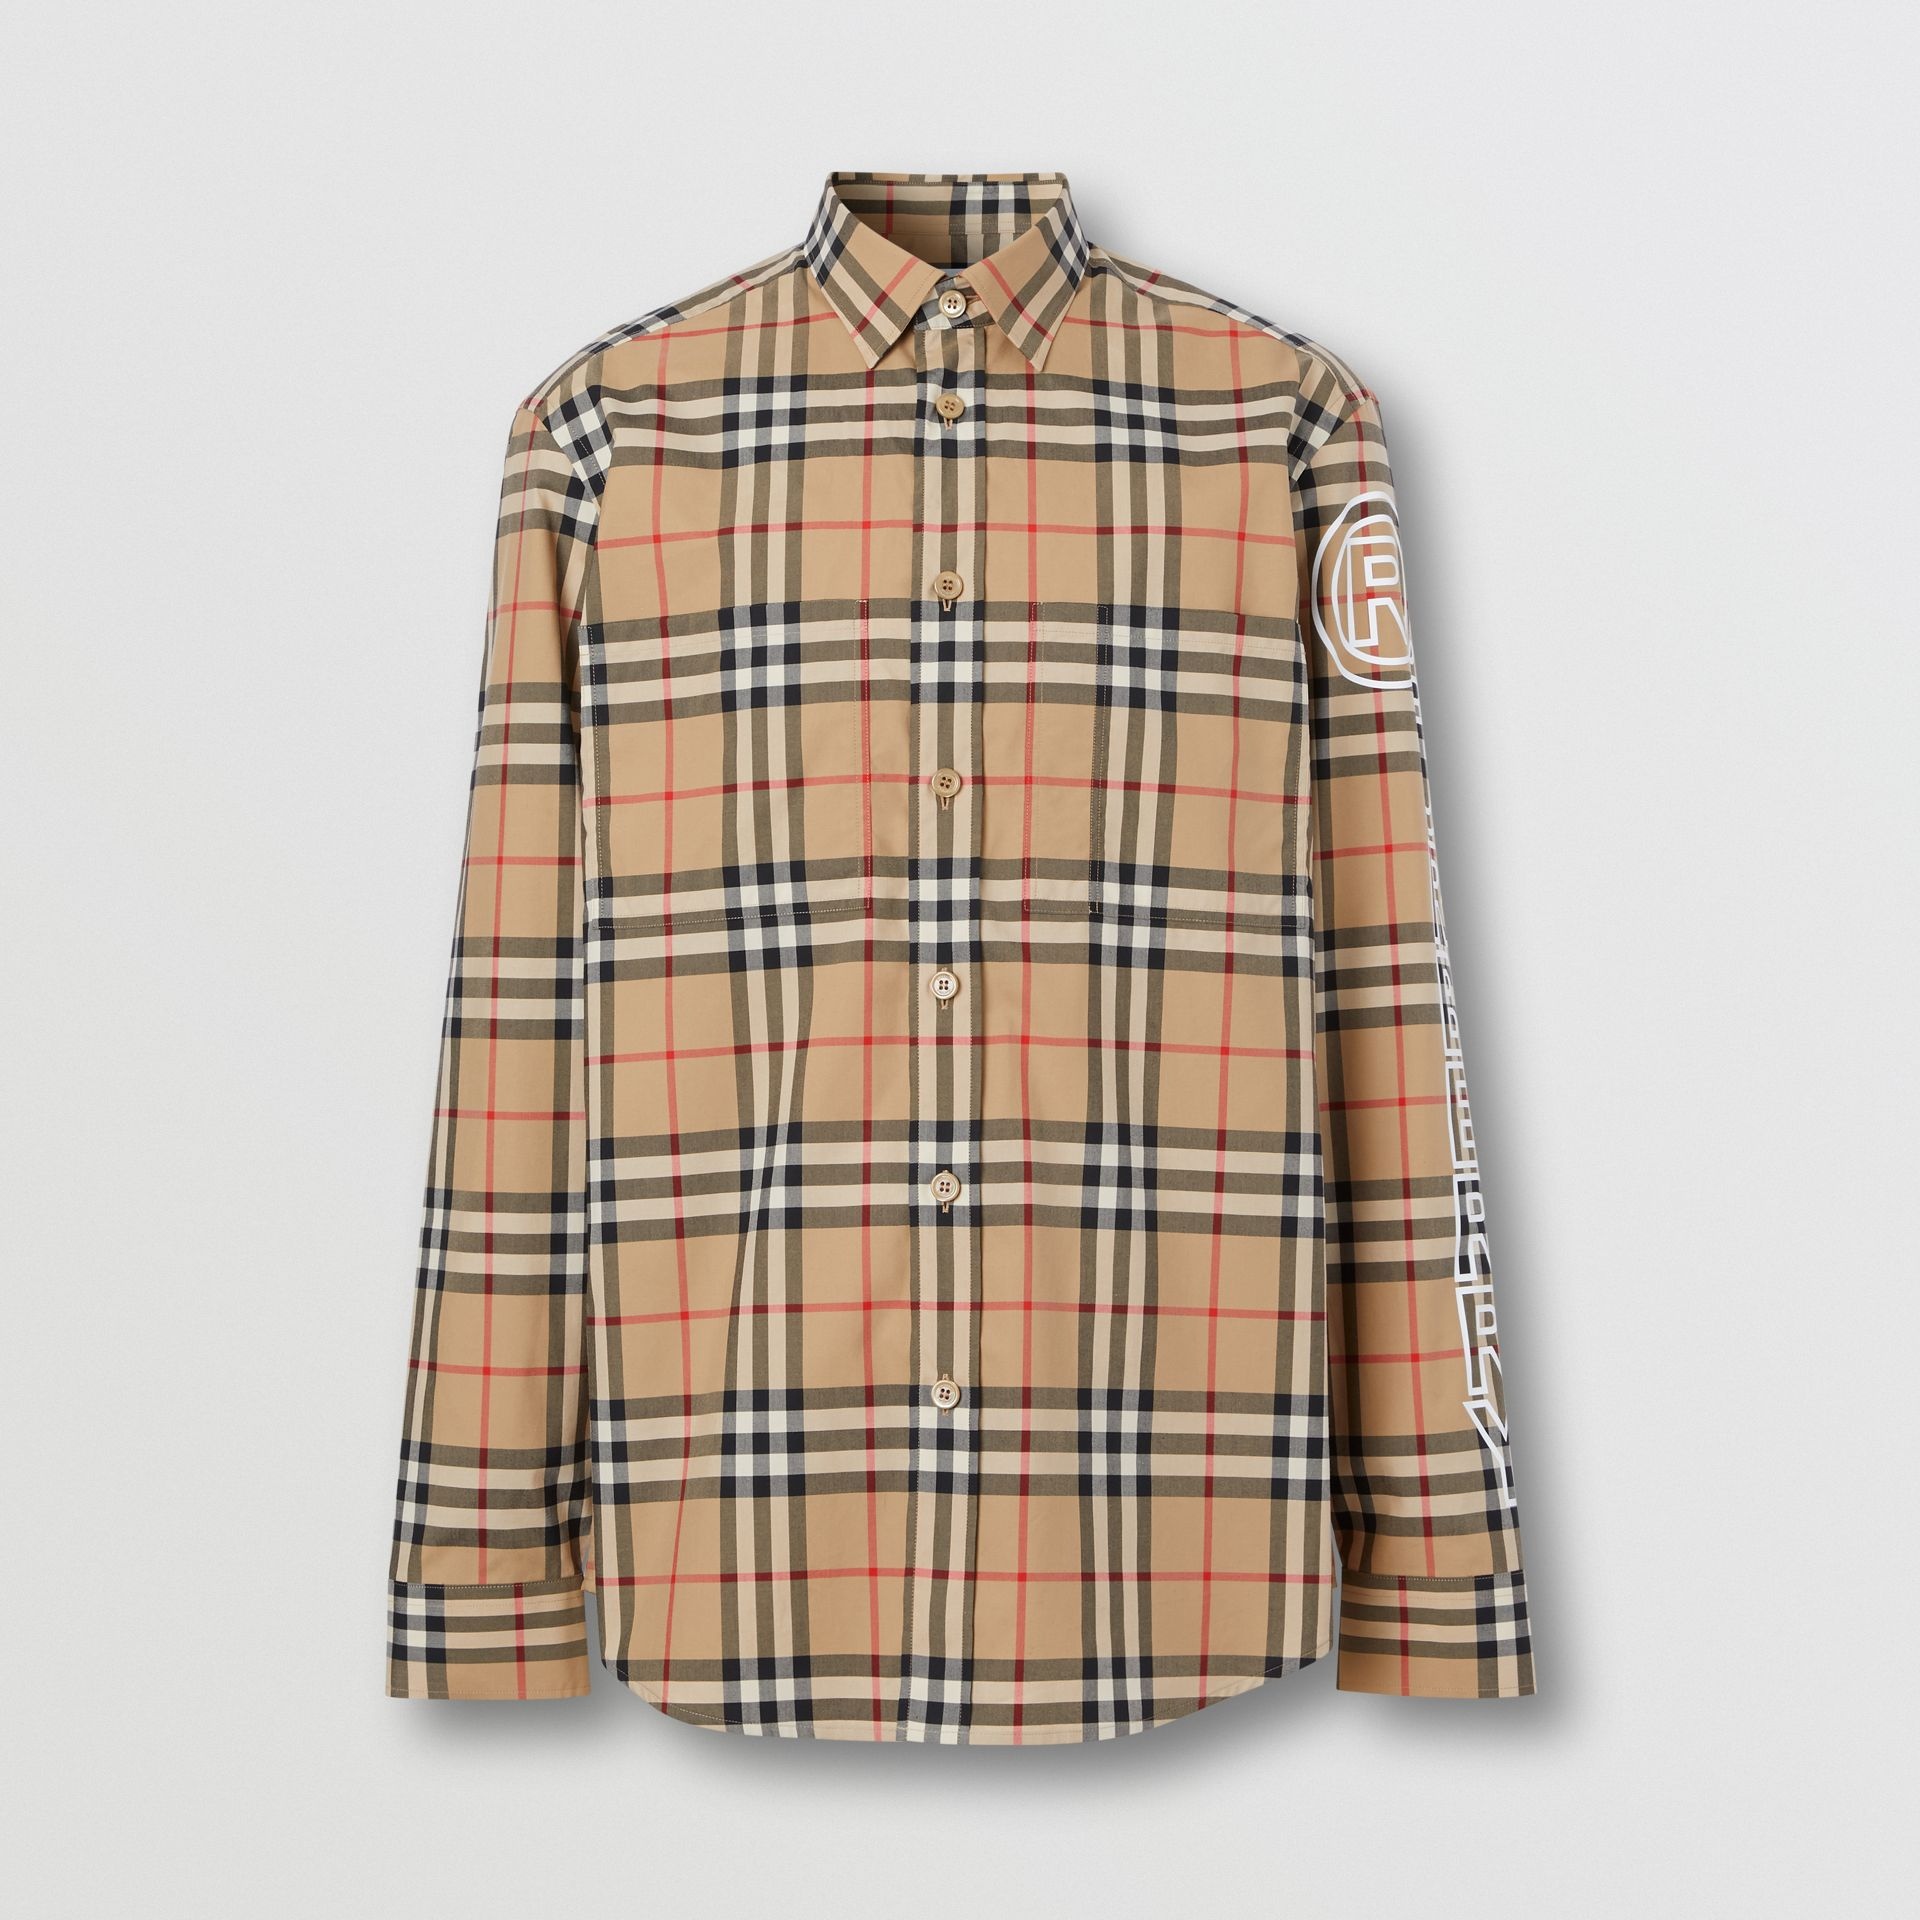 Logo Print Vintage Check Cotton Poplin Shirt in Archive Beige - Men | Burberry - gallery image 3